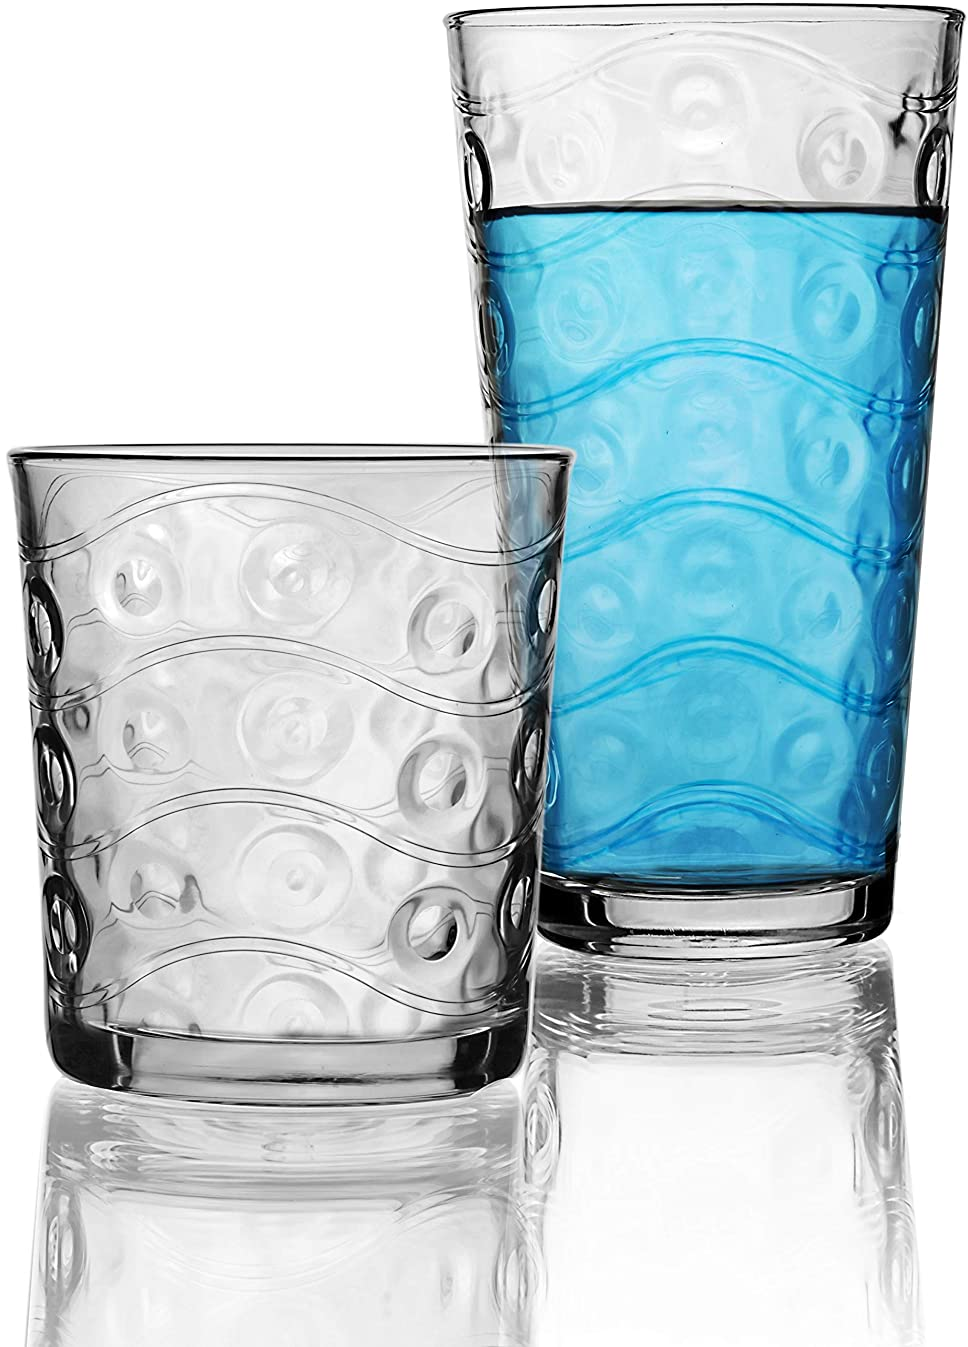 Circleware 40179 Cosmo 16-Piece Set, Drinking Glasses & Whiskey Cups Glassware for Water, Beer, Juice, Ice Tea, Beverage, 8-15.7 oz & 8-12.5 oz, 16pc